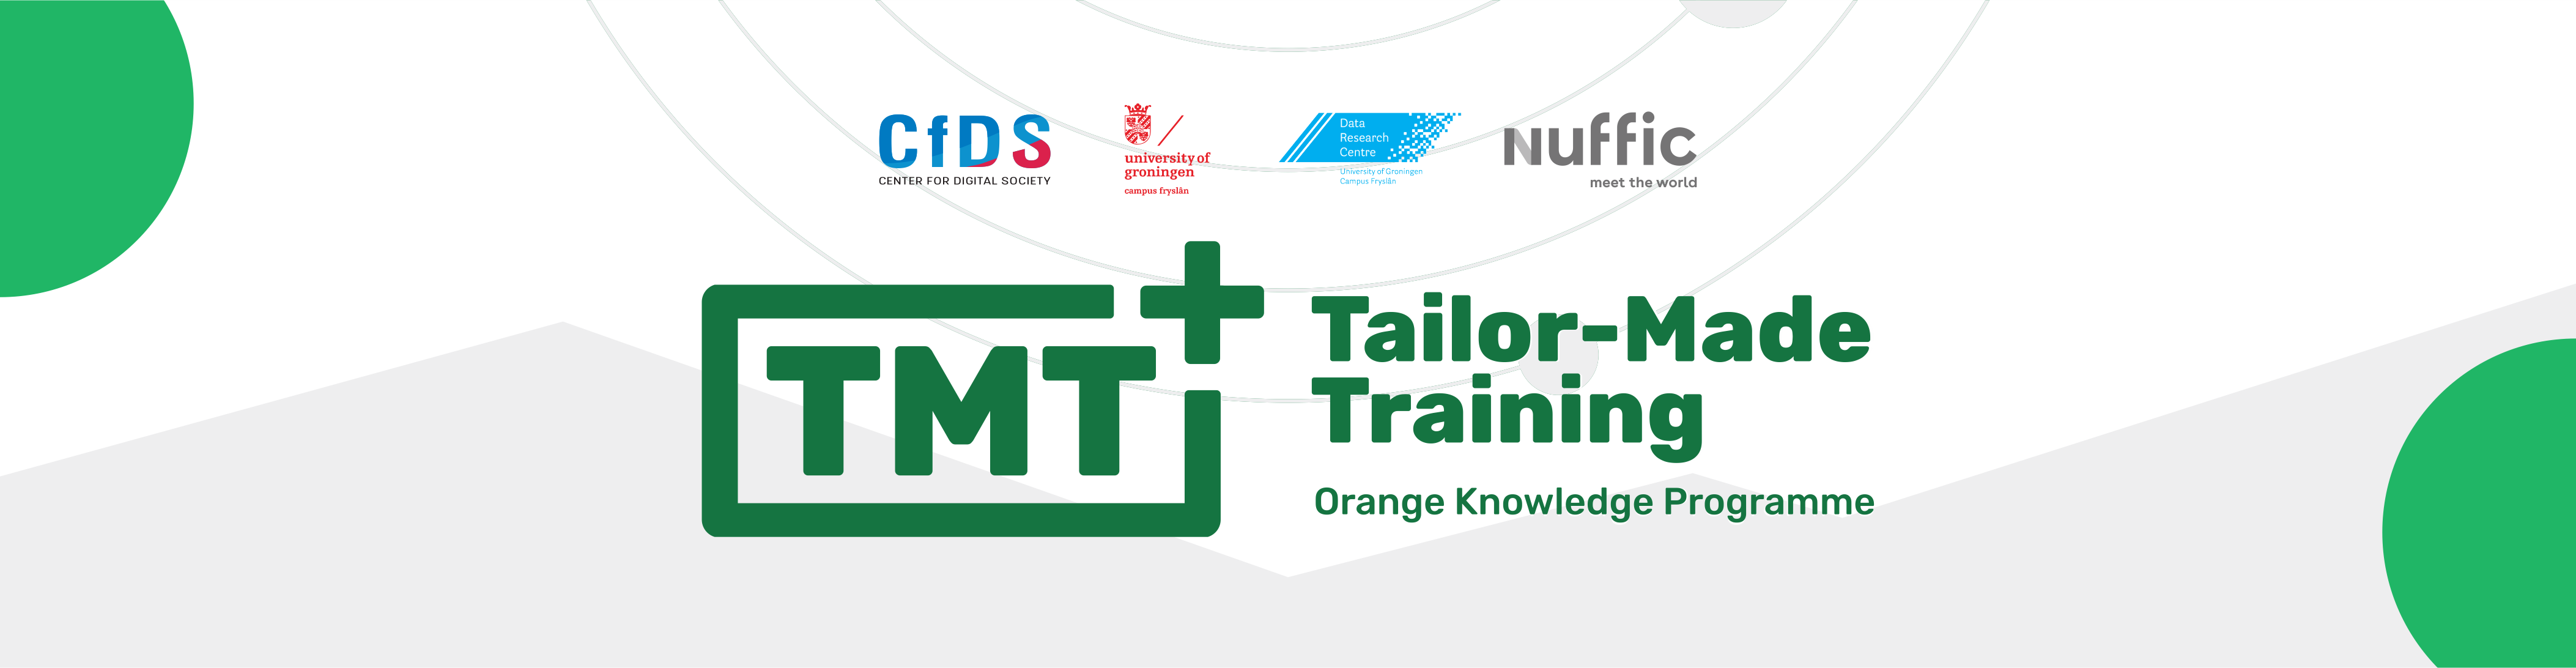 [Siaran Pers] Reflection Session 1 Tailor-Made Training+ (TMT+) Orange Knowledge Programme by CfDS UGM & Data Research Centre (DRC) University of Groningen/Campus Fryslân